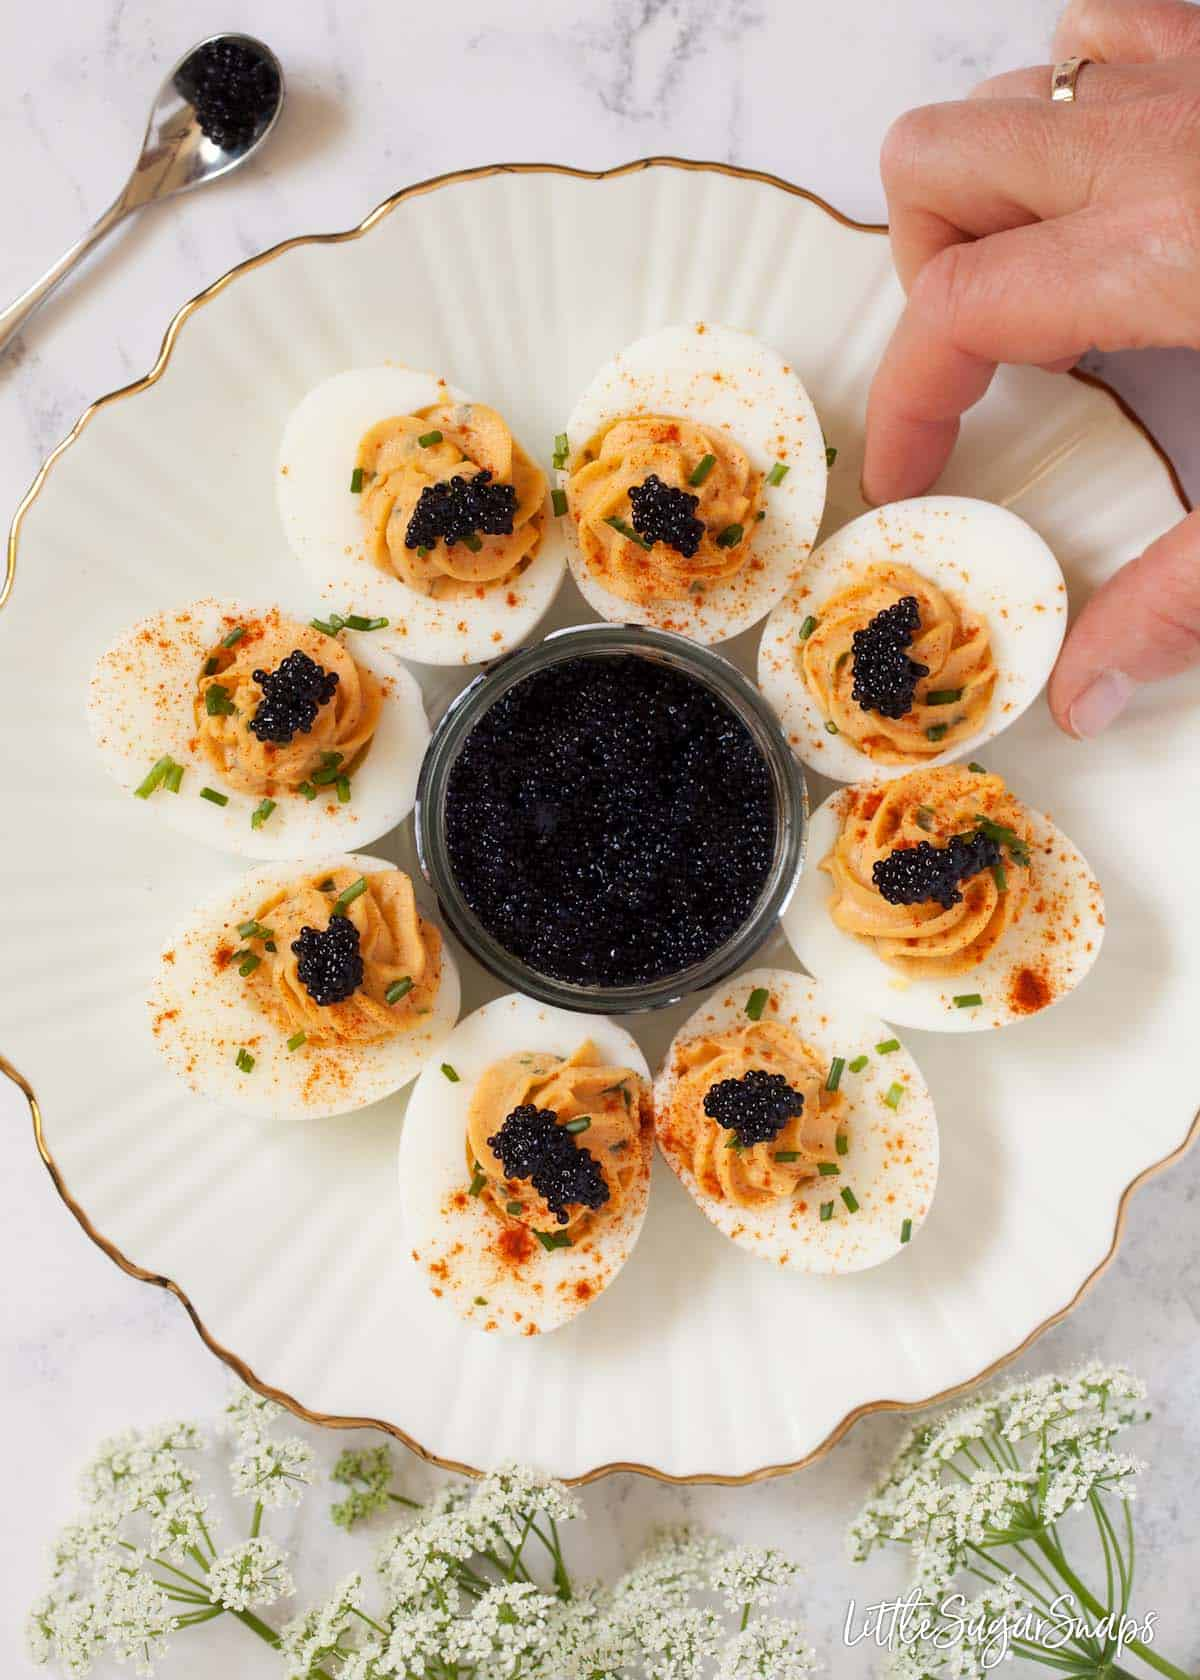 Devilled eggs with caviar on a gold rimmed white plate. A person is taking one of the eggs from the plate and there is a pot of caviar in the middle of the plate